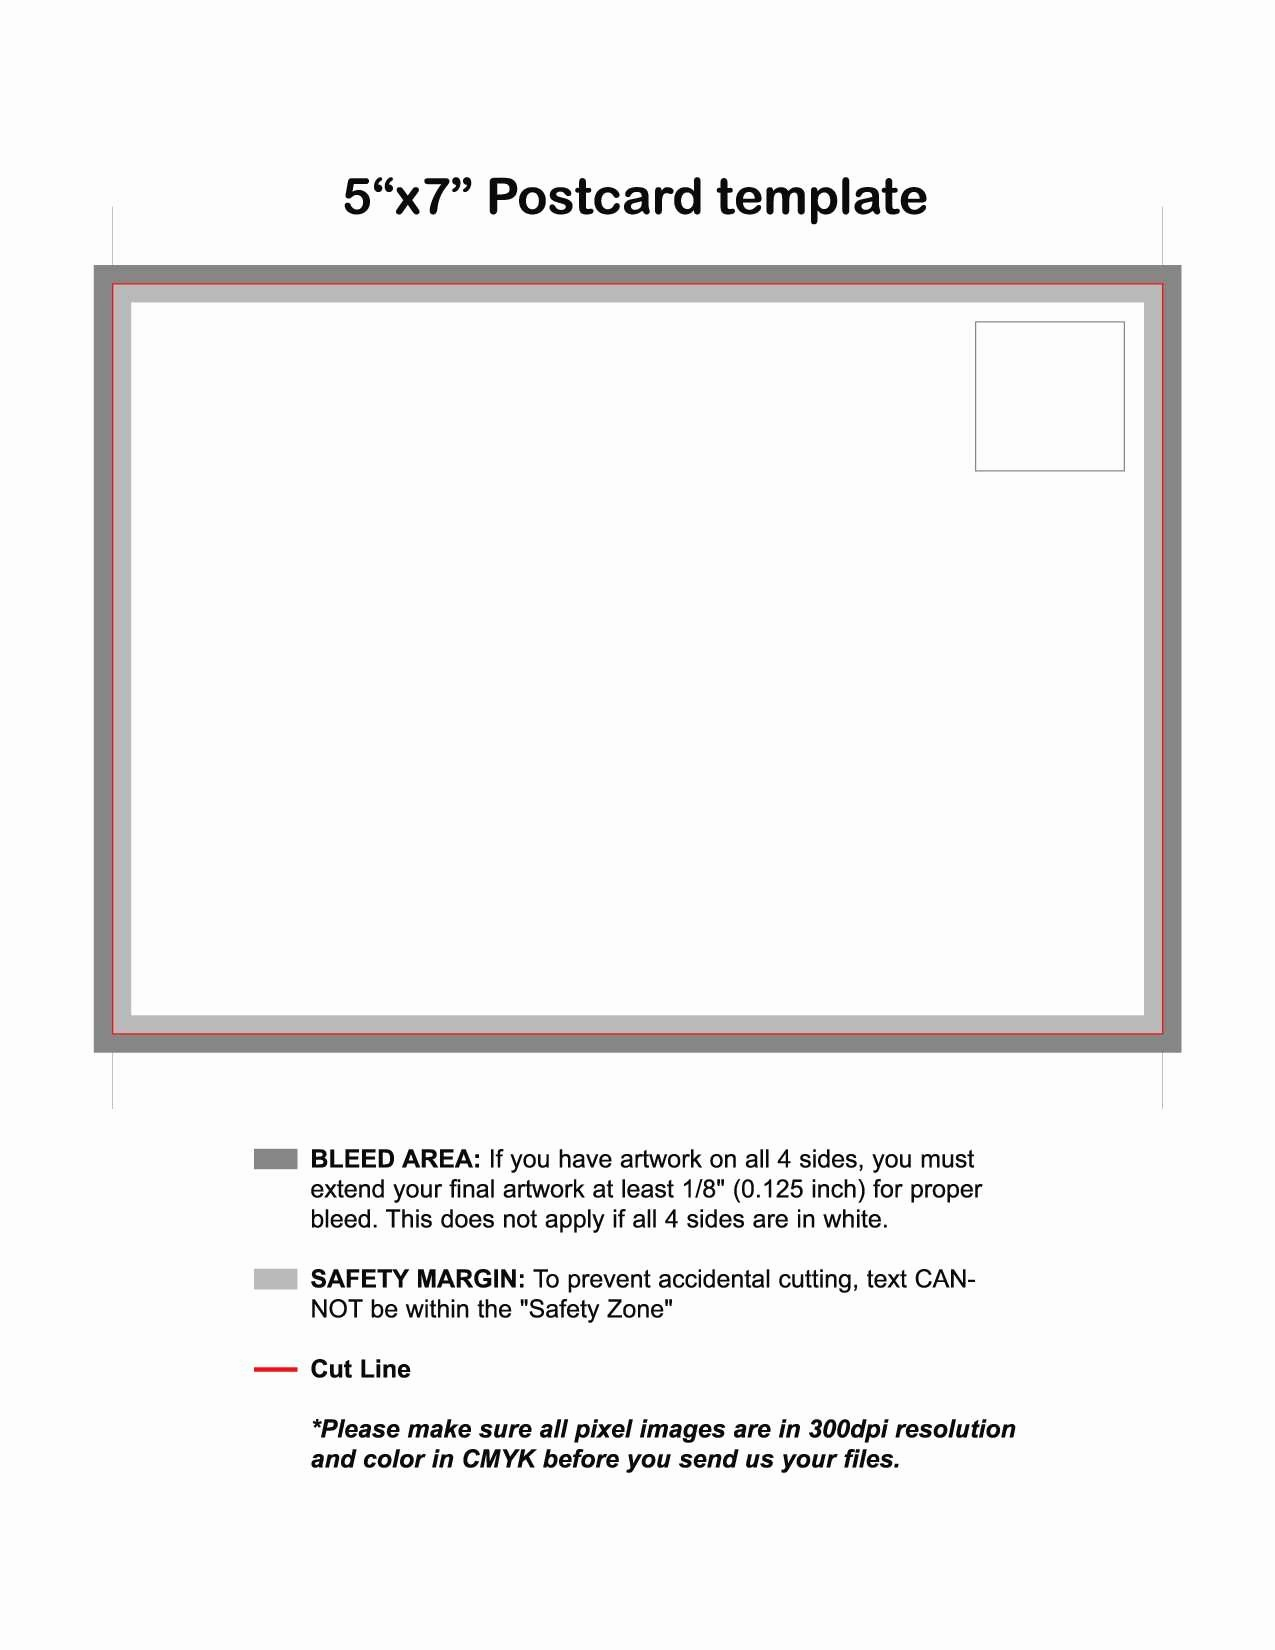 Postkarte Baby Best Postcard Template Pdf Download Luxury Vorlage Postkarte Jetzt